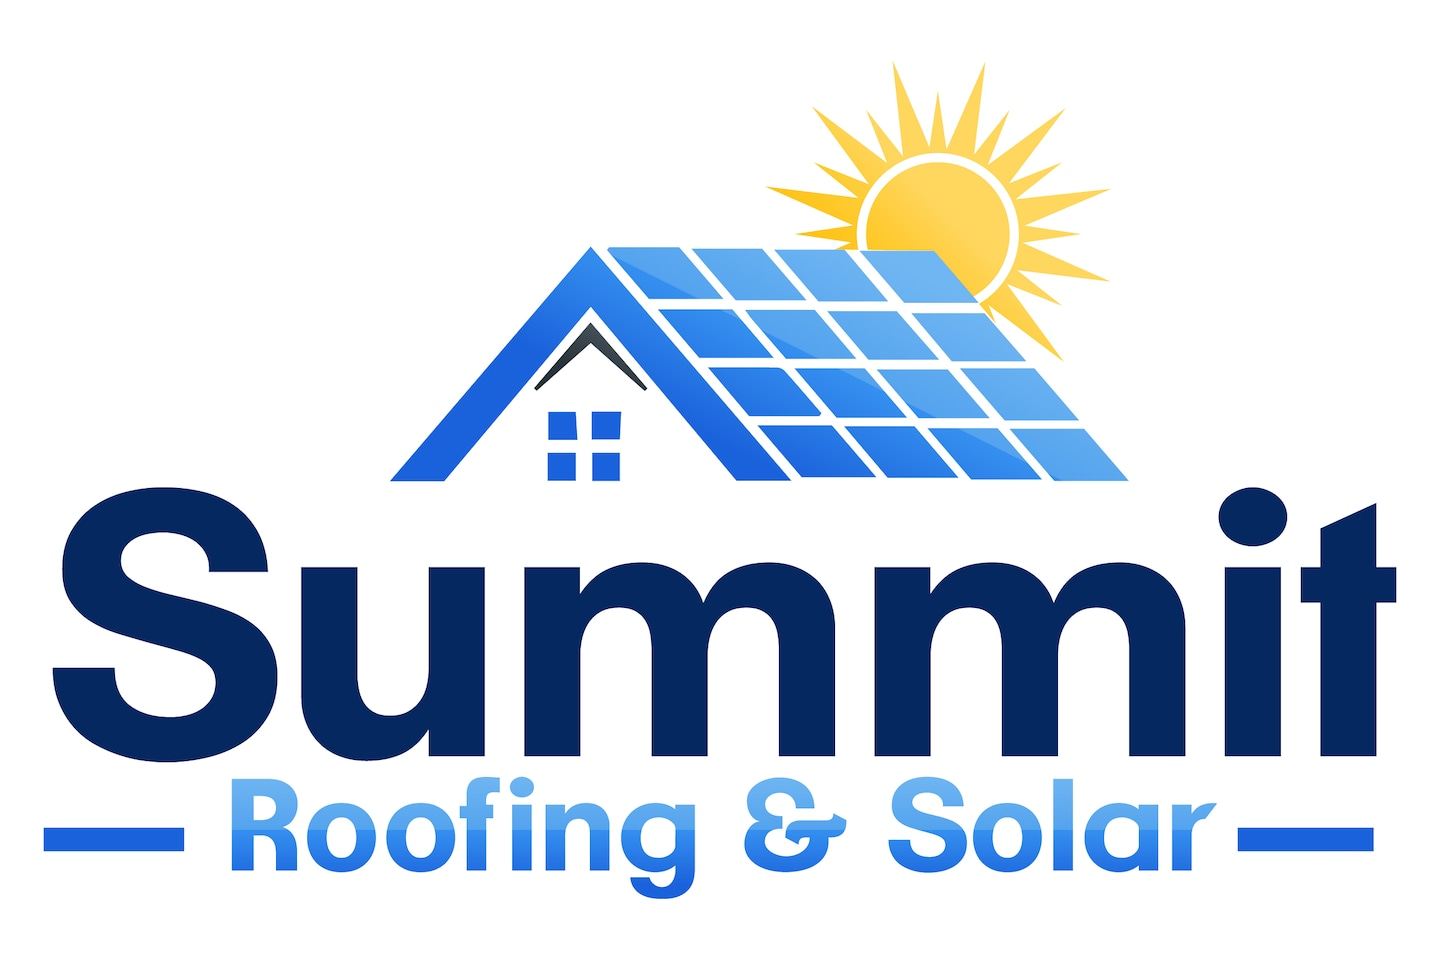 Summit Roofing & Solar